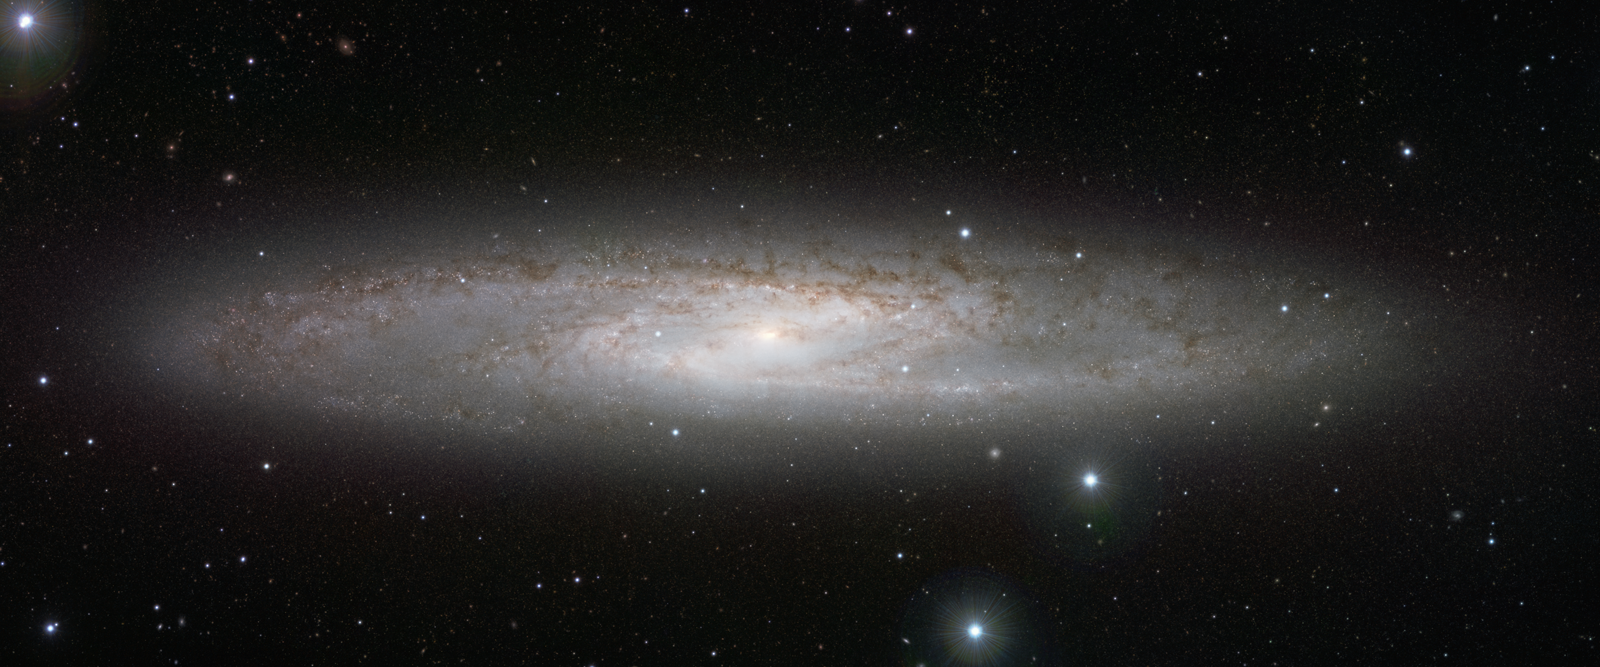 Molecular variety in distant dust clouds stuns astronomers